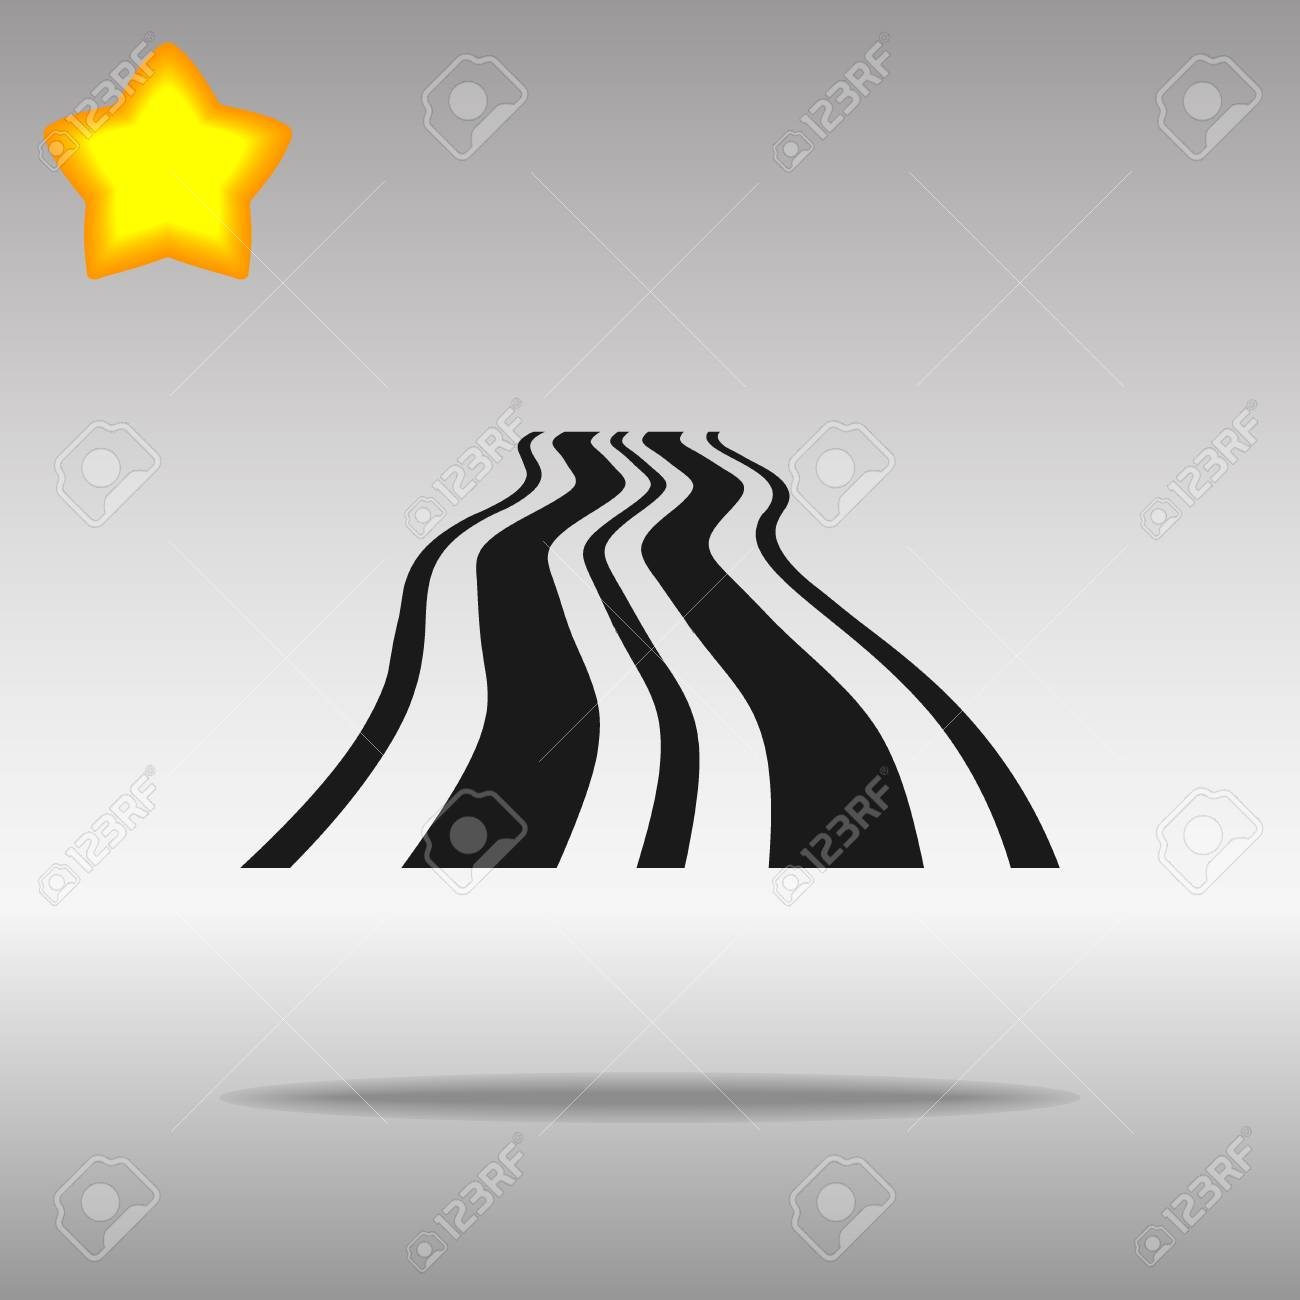 black Road Icon button logo symbol concept high quality on the gray background - 82176422